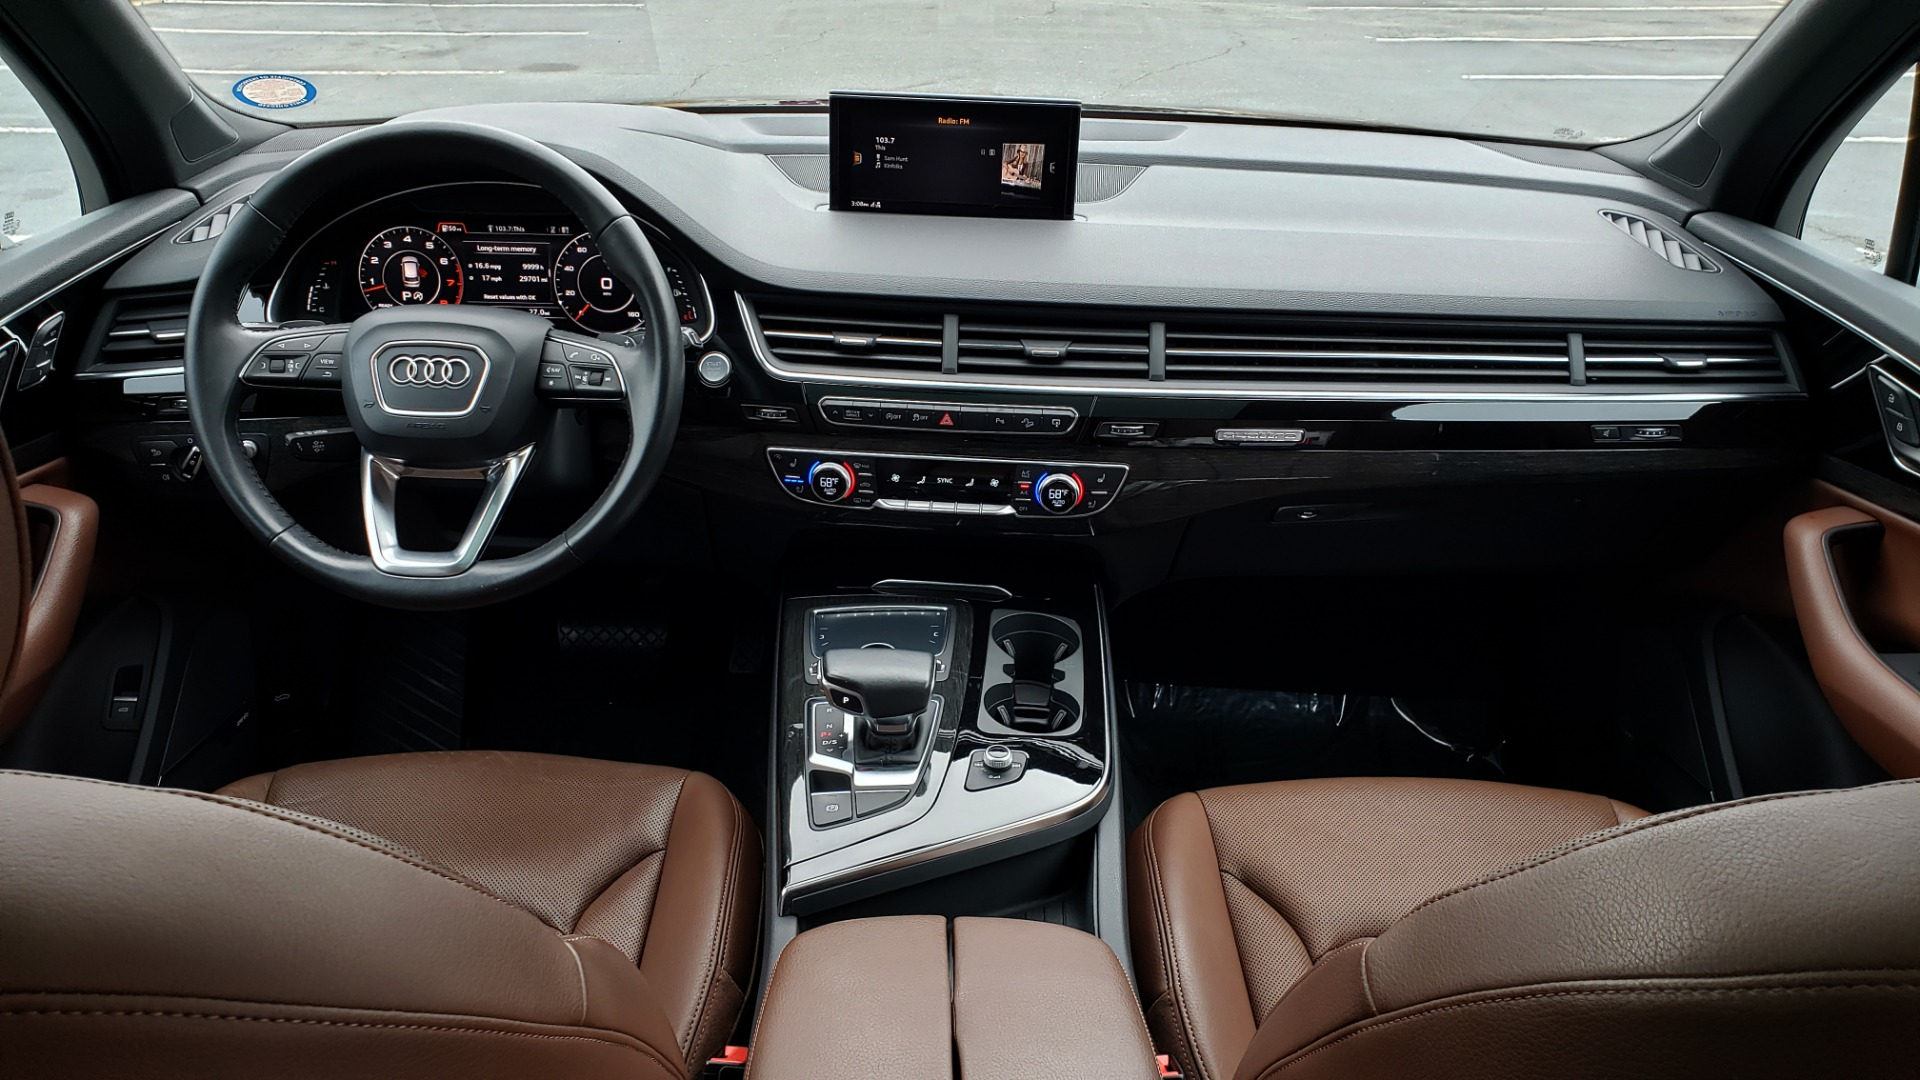 Used 2017 Audi Q7 PRESTIGE 3.0T / AWD / NAV / PANO-ROOF / HTD STS / BOSE / VISION for sale Sold at Formula Imports in Charlotte NC 28227 90